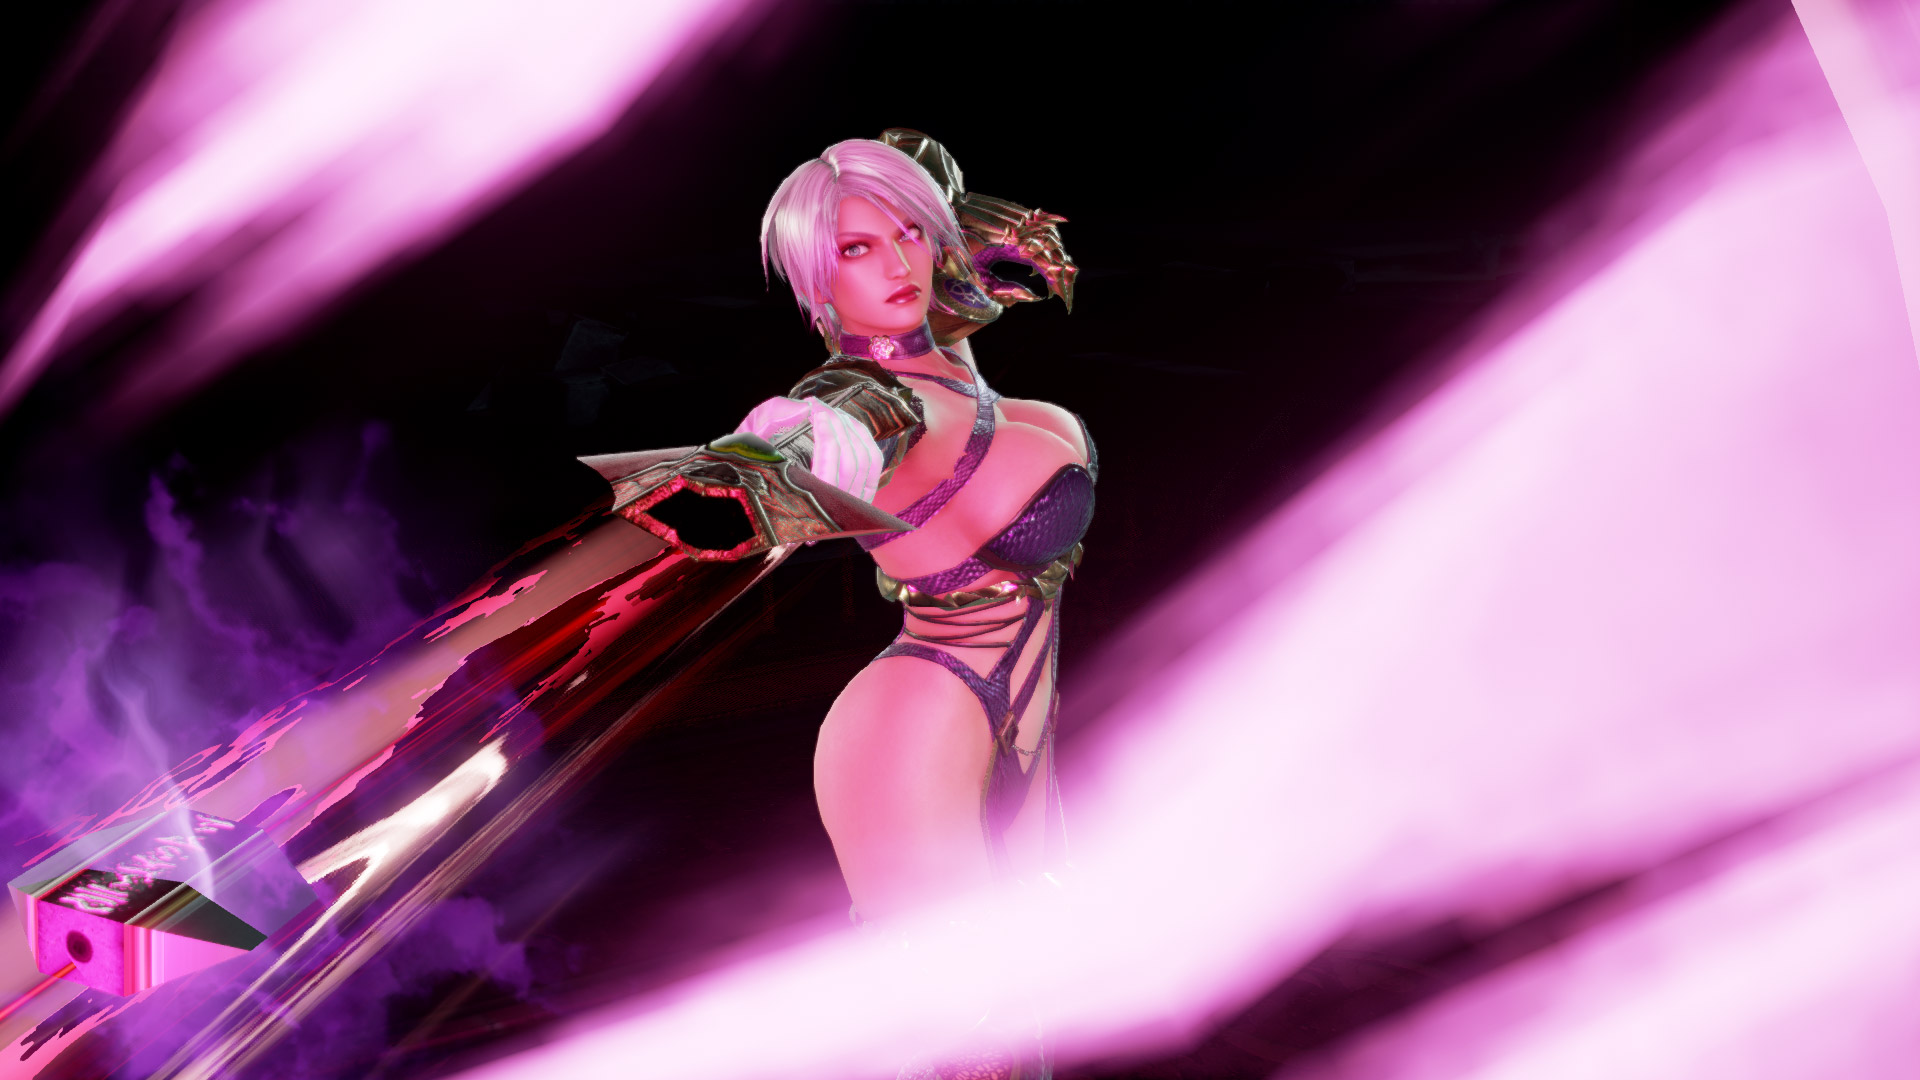 SoulCalibur VI roster confirms Ivy, Zasalamel will join the fray